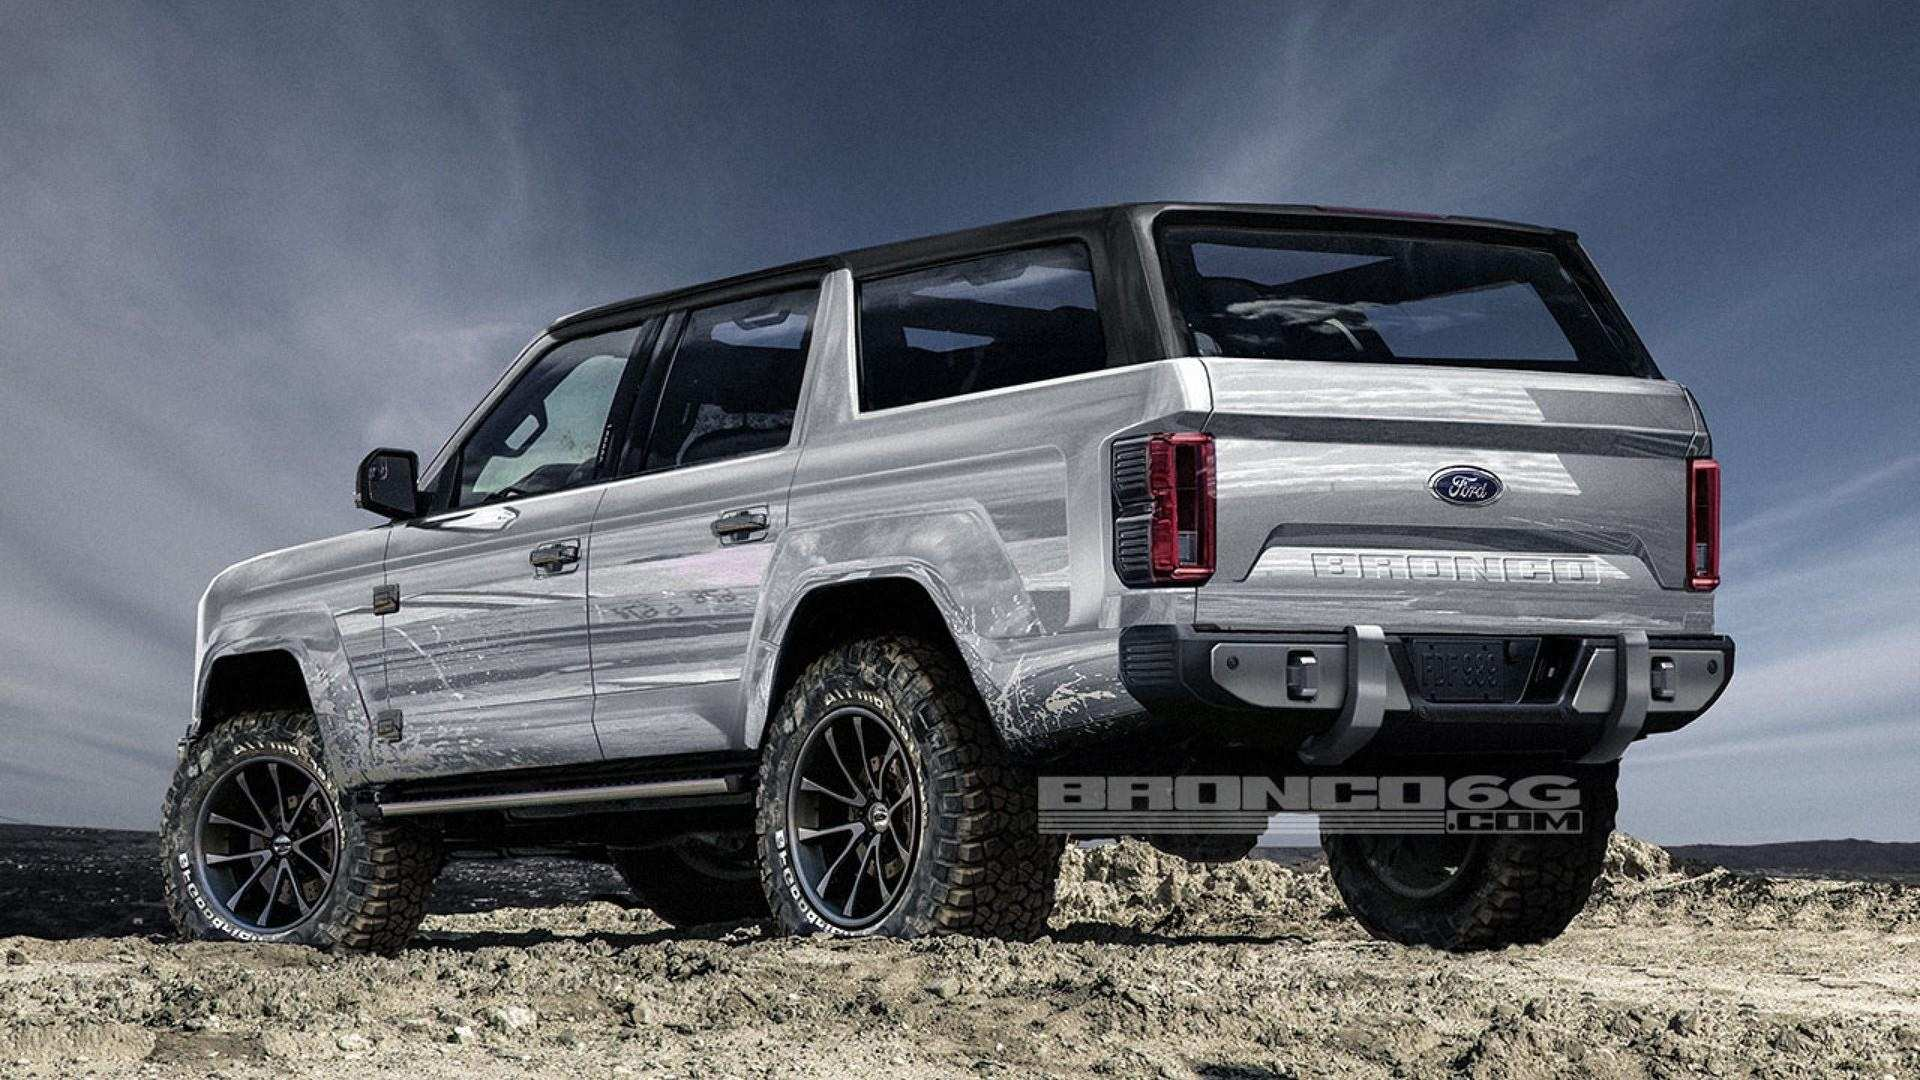 52 Concept of 2020 Ford Bronco Review Spy Shoot for 2020 Ford Bronco Review